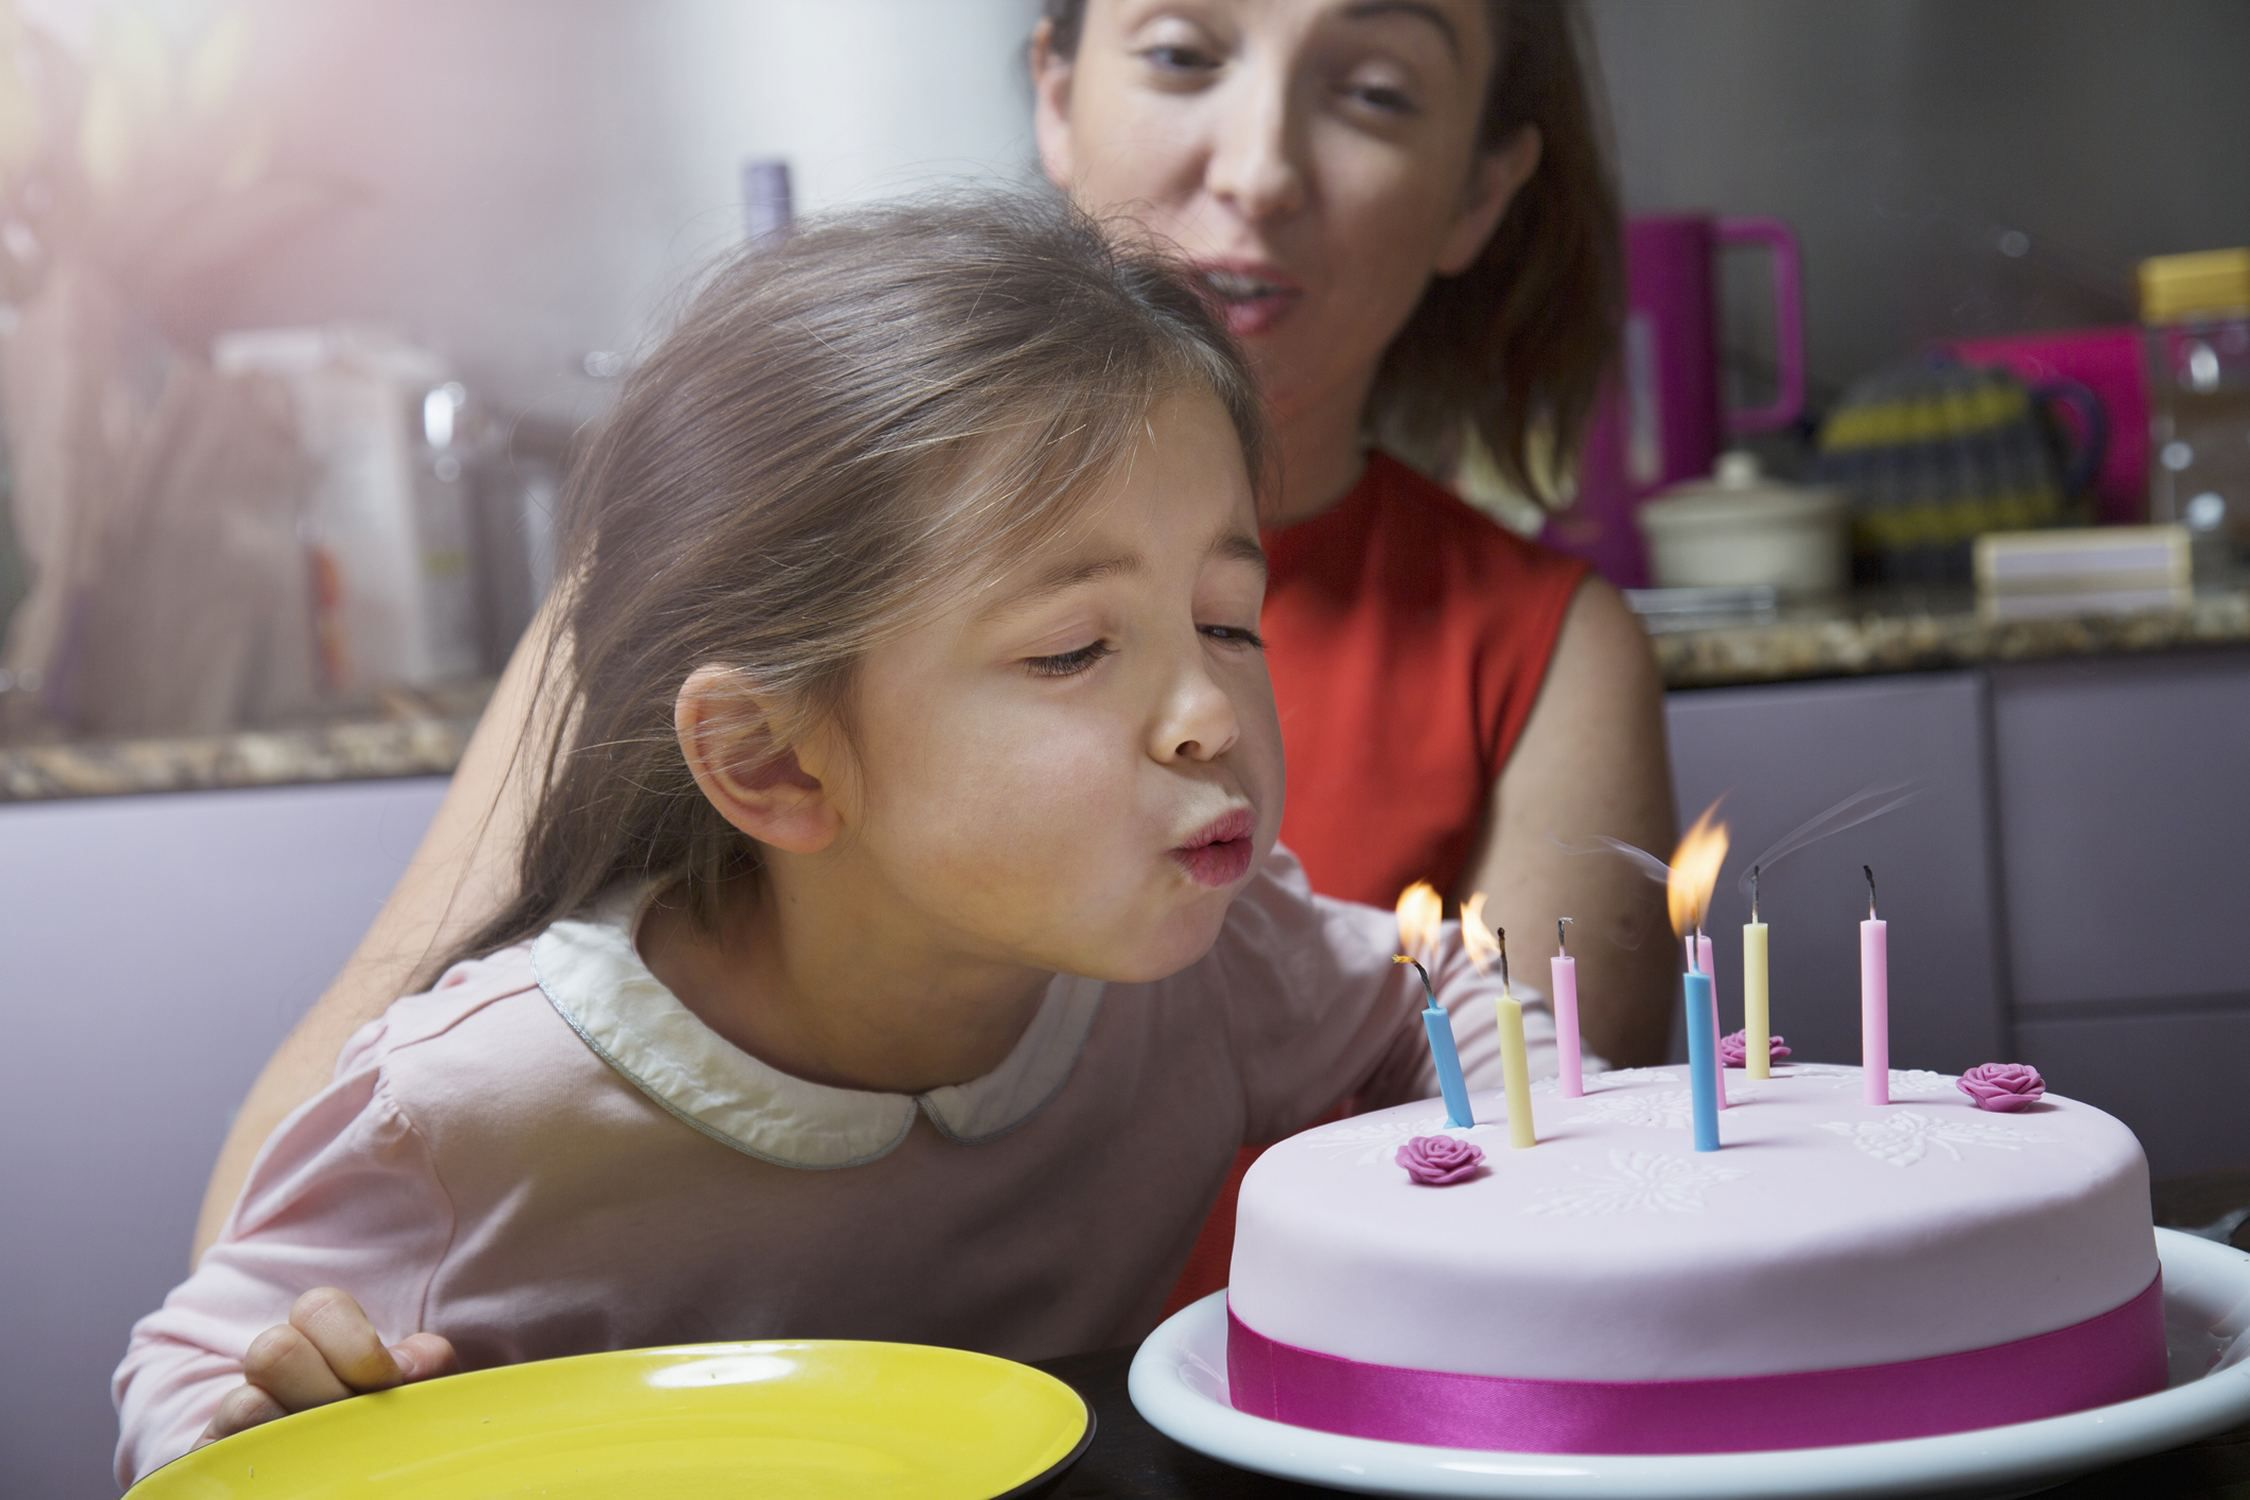 The Top Kids Birthday Gifts When Youre On A Tight Budget - Childrens birthday party etiquette uk